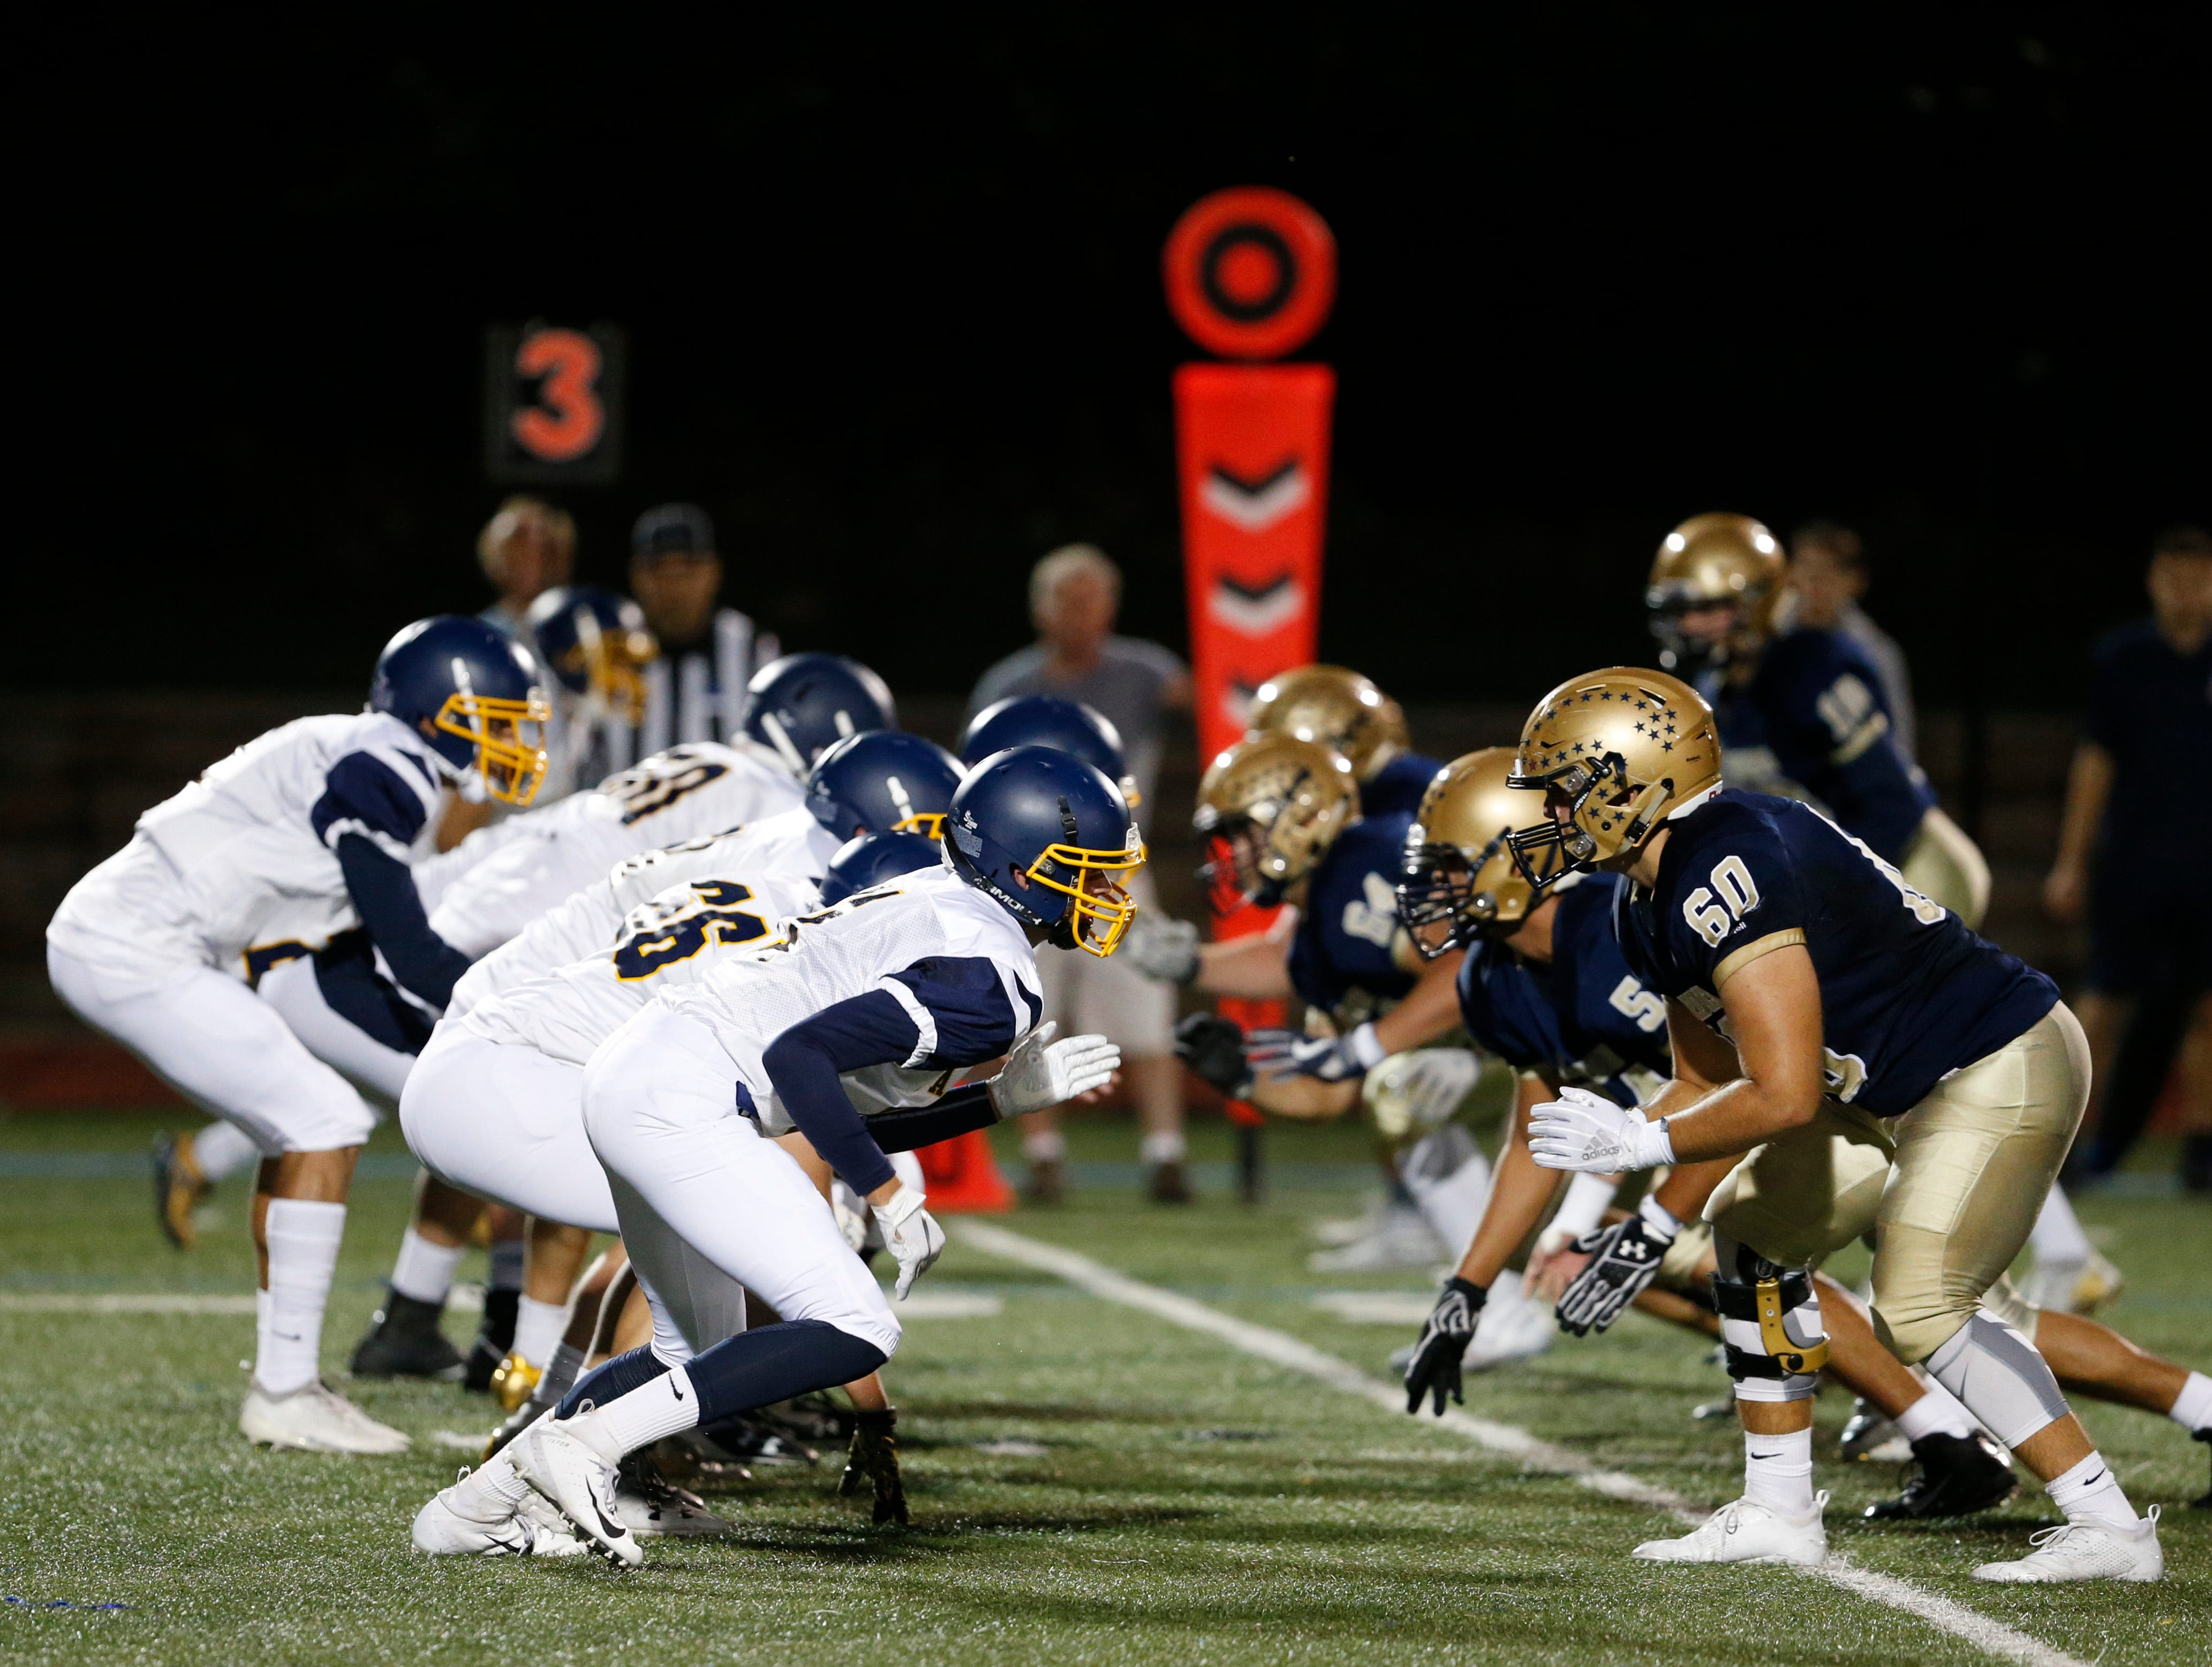 The Walter Panas offensive line sets up across from Lourdes' defensive line before a snap during their Sept. 21 game.